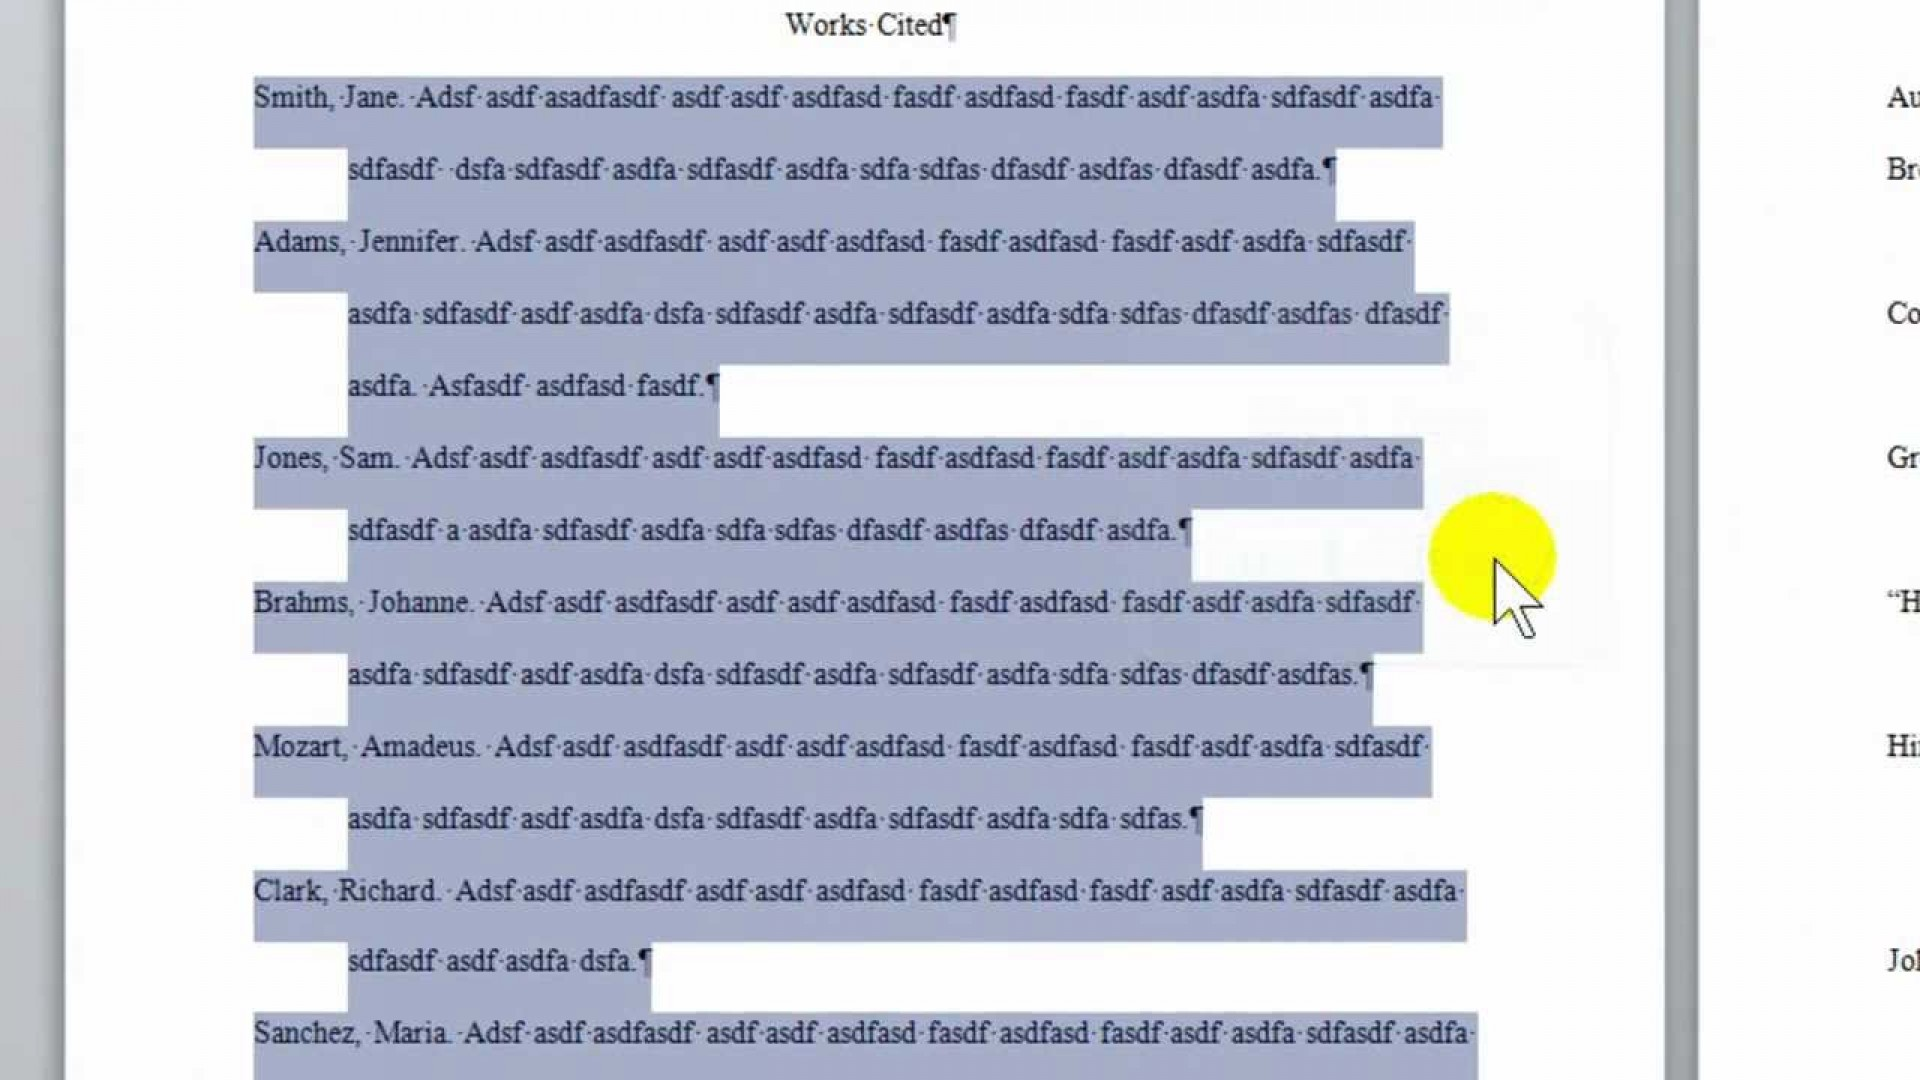 012 How To Cite Website In Essay Example Stupendous A Paper With No Author Or Date Citation Text Apa 1920